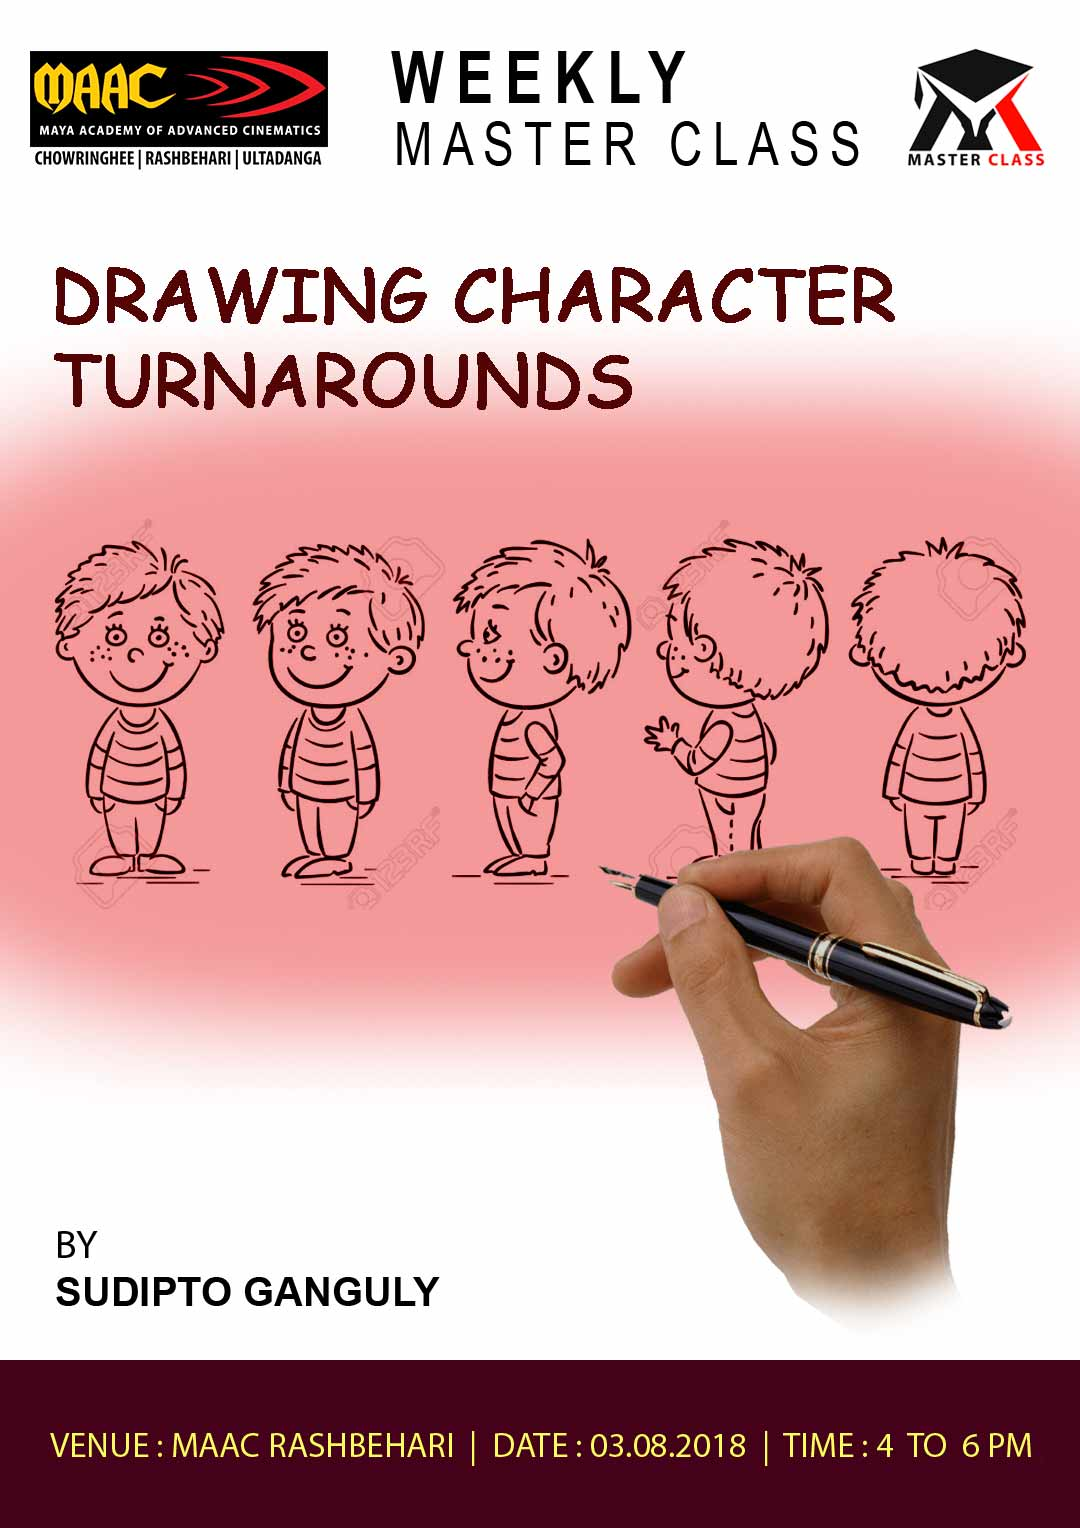 Weekly Master Class on Drawing Character Turnarounds